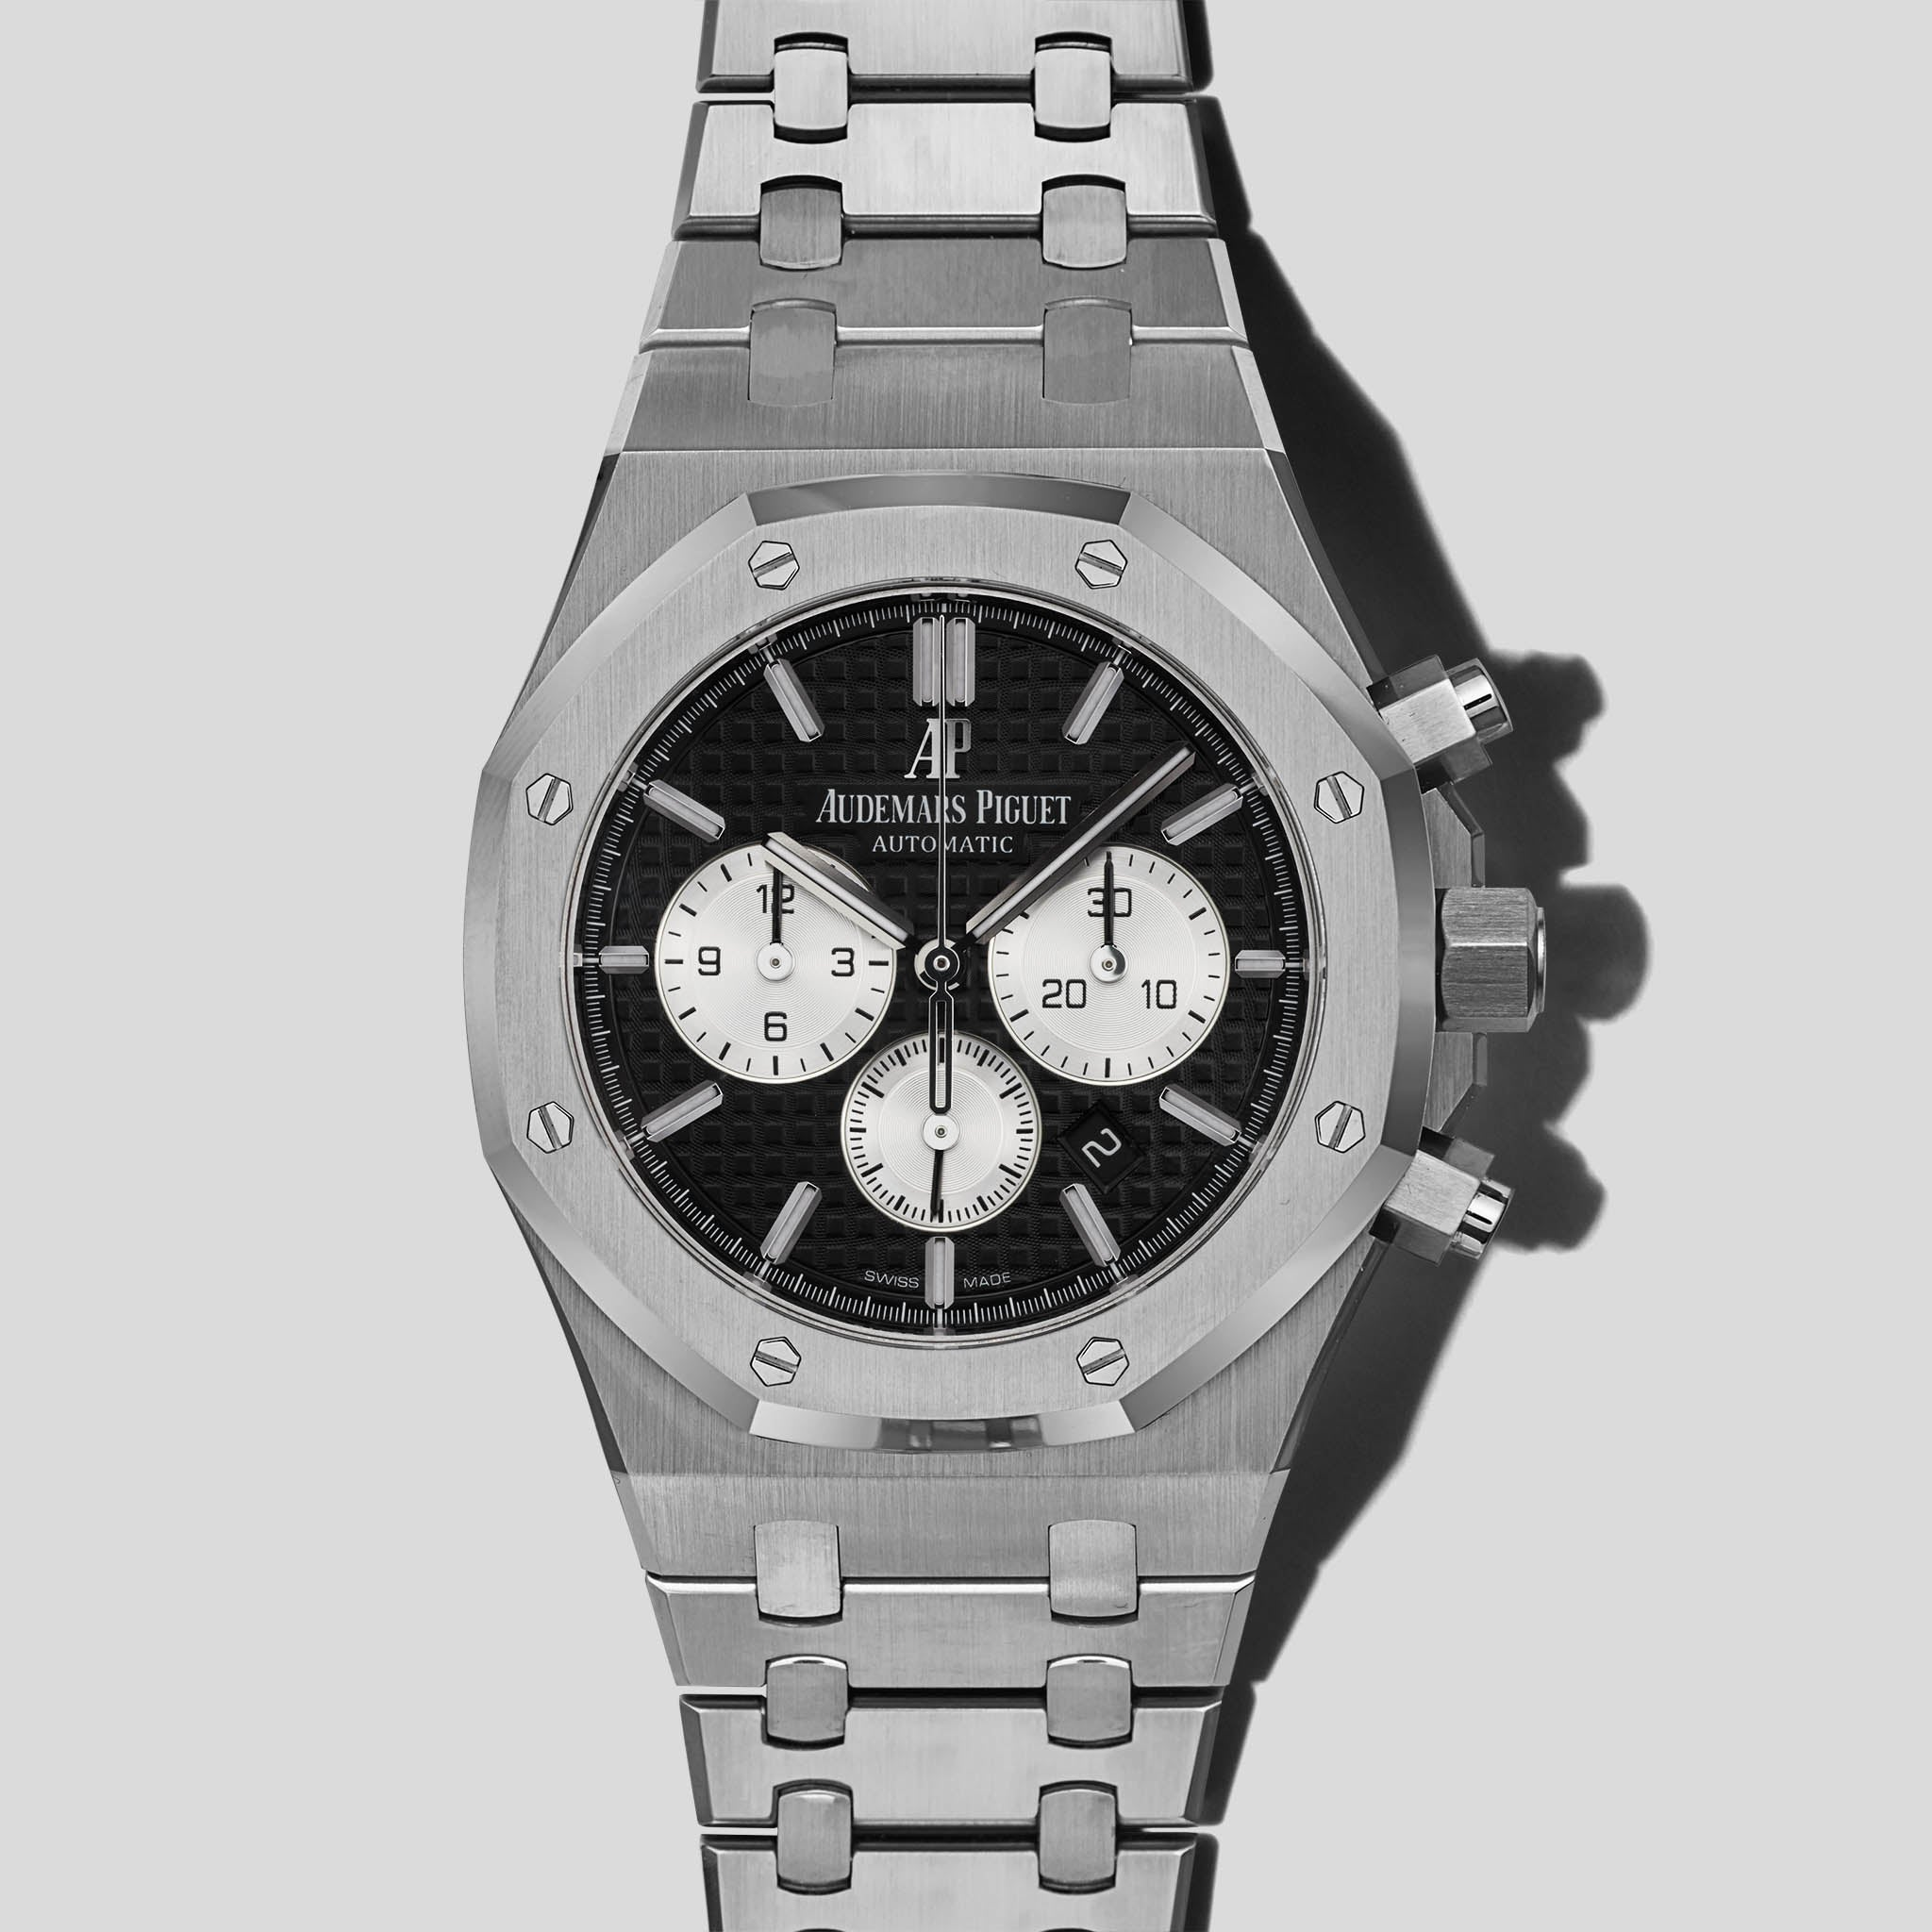 Royal Oak Chronograph 26331ST.OO.1220ST.02